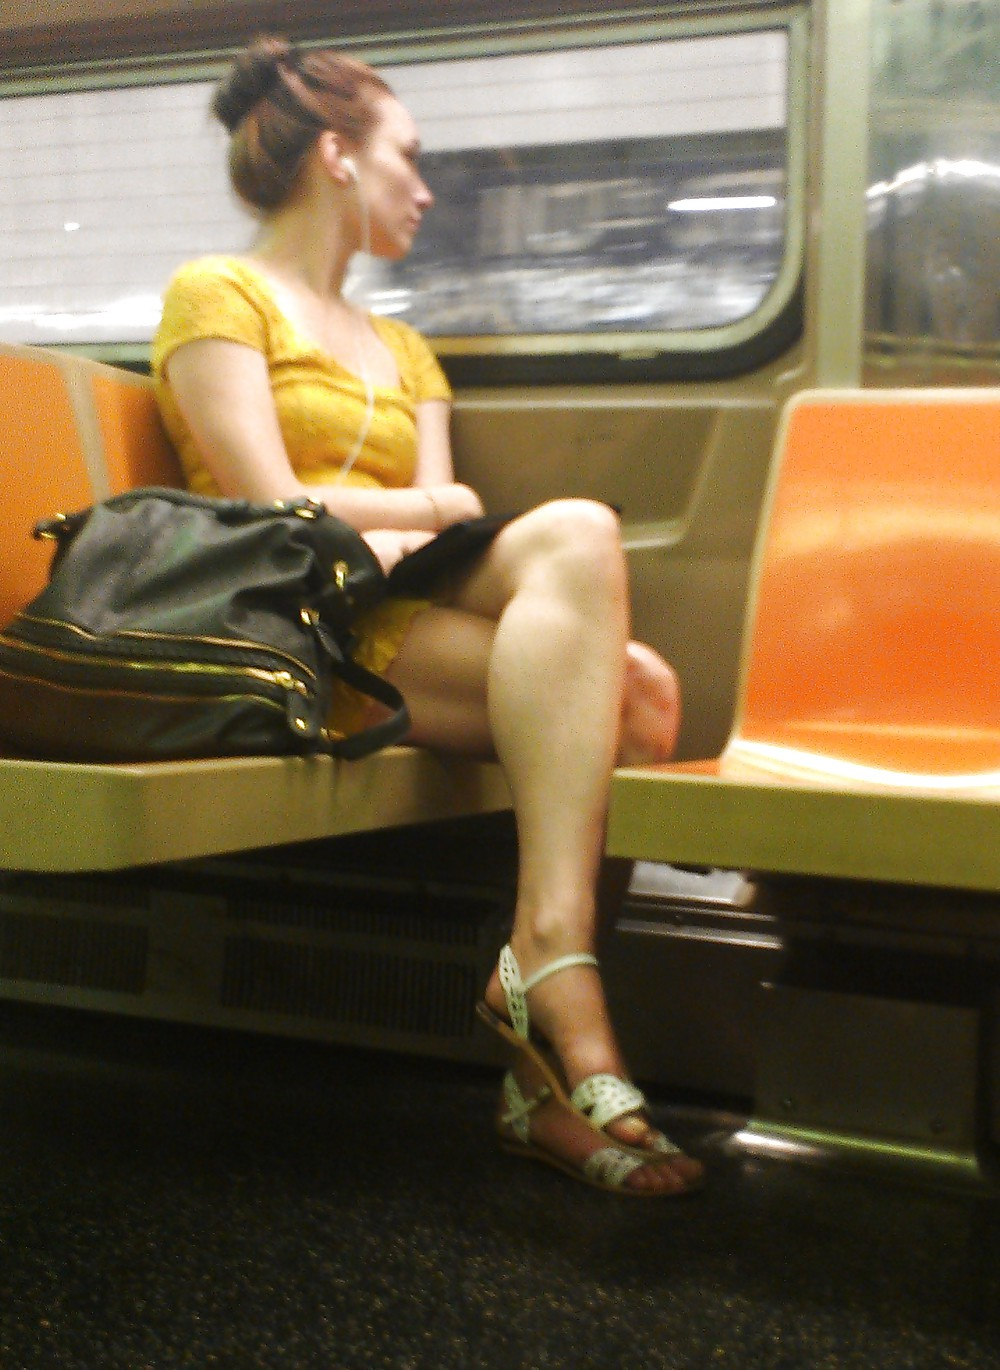 Nyc subway voyeur asian girls - 1 part 10